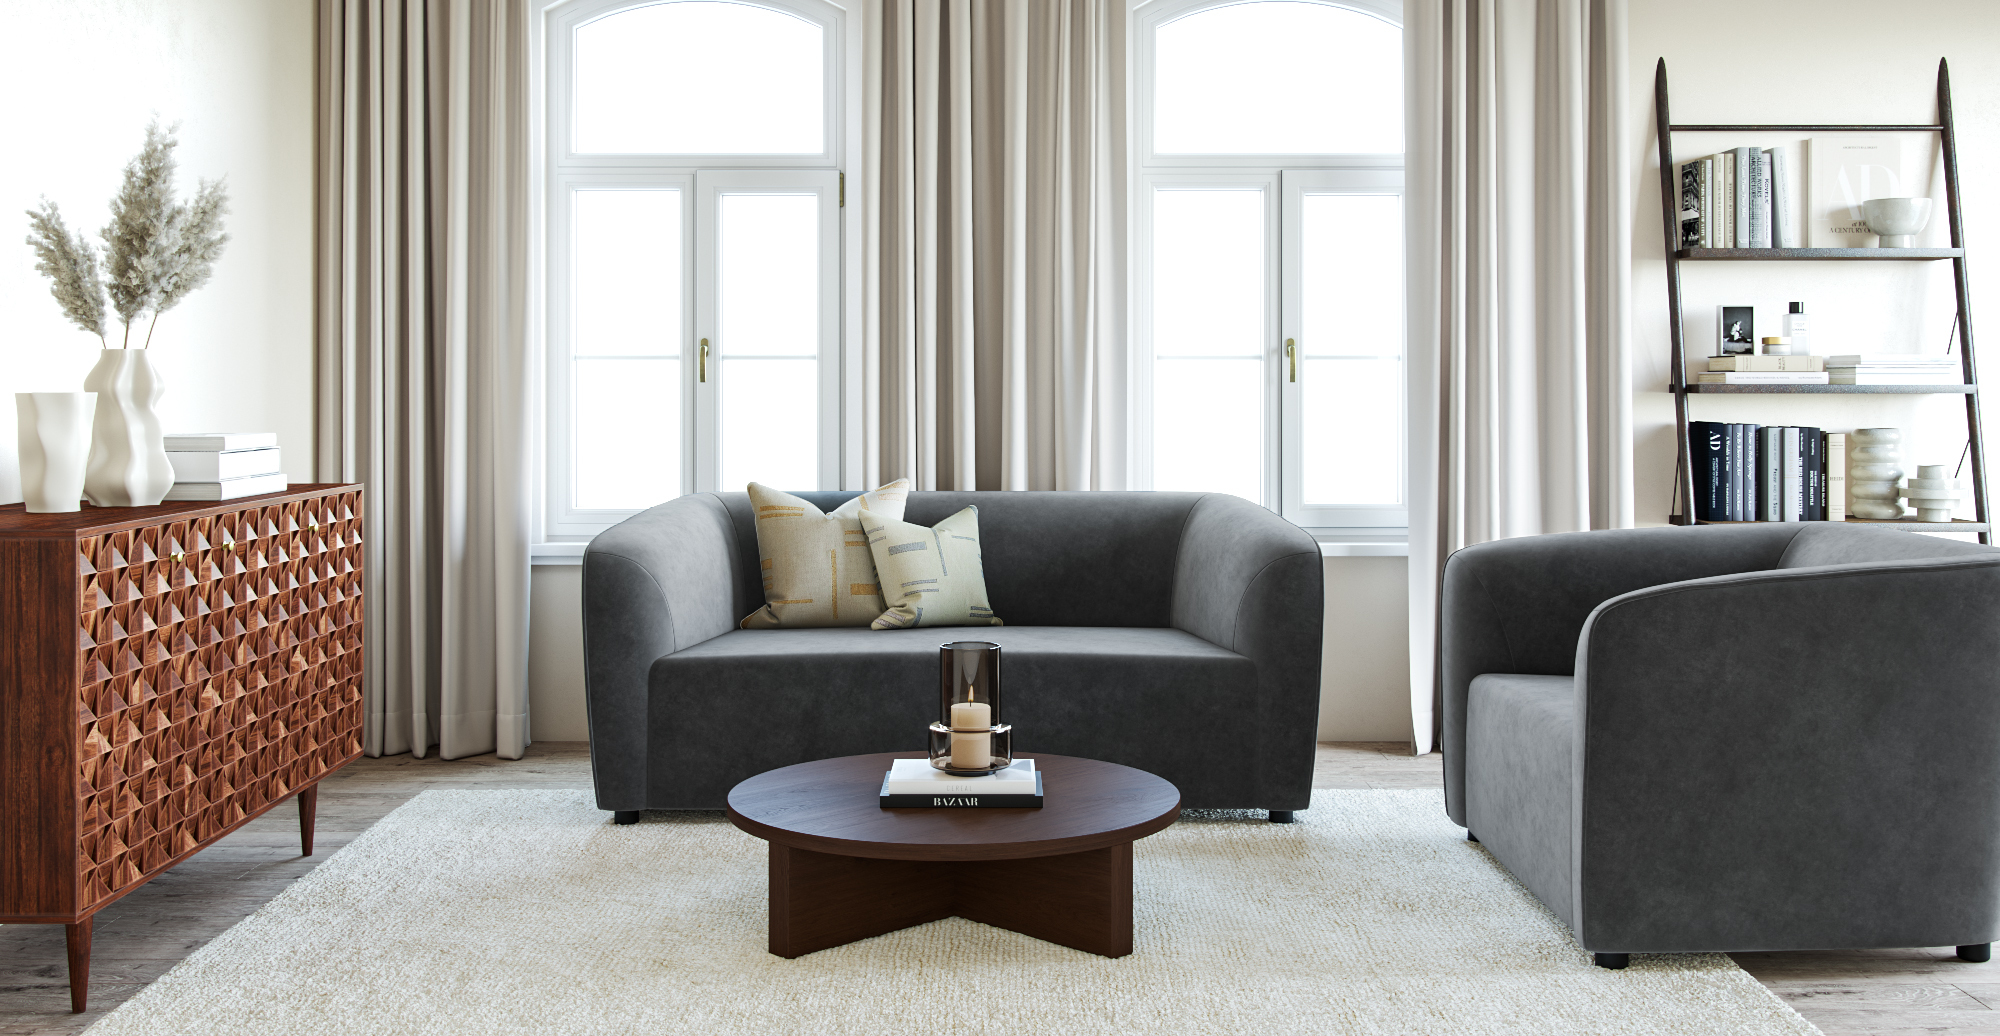 Brosa Anais Collection with Henley Coffee Table in Modern Contemporary Style Living Room